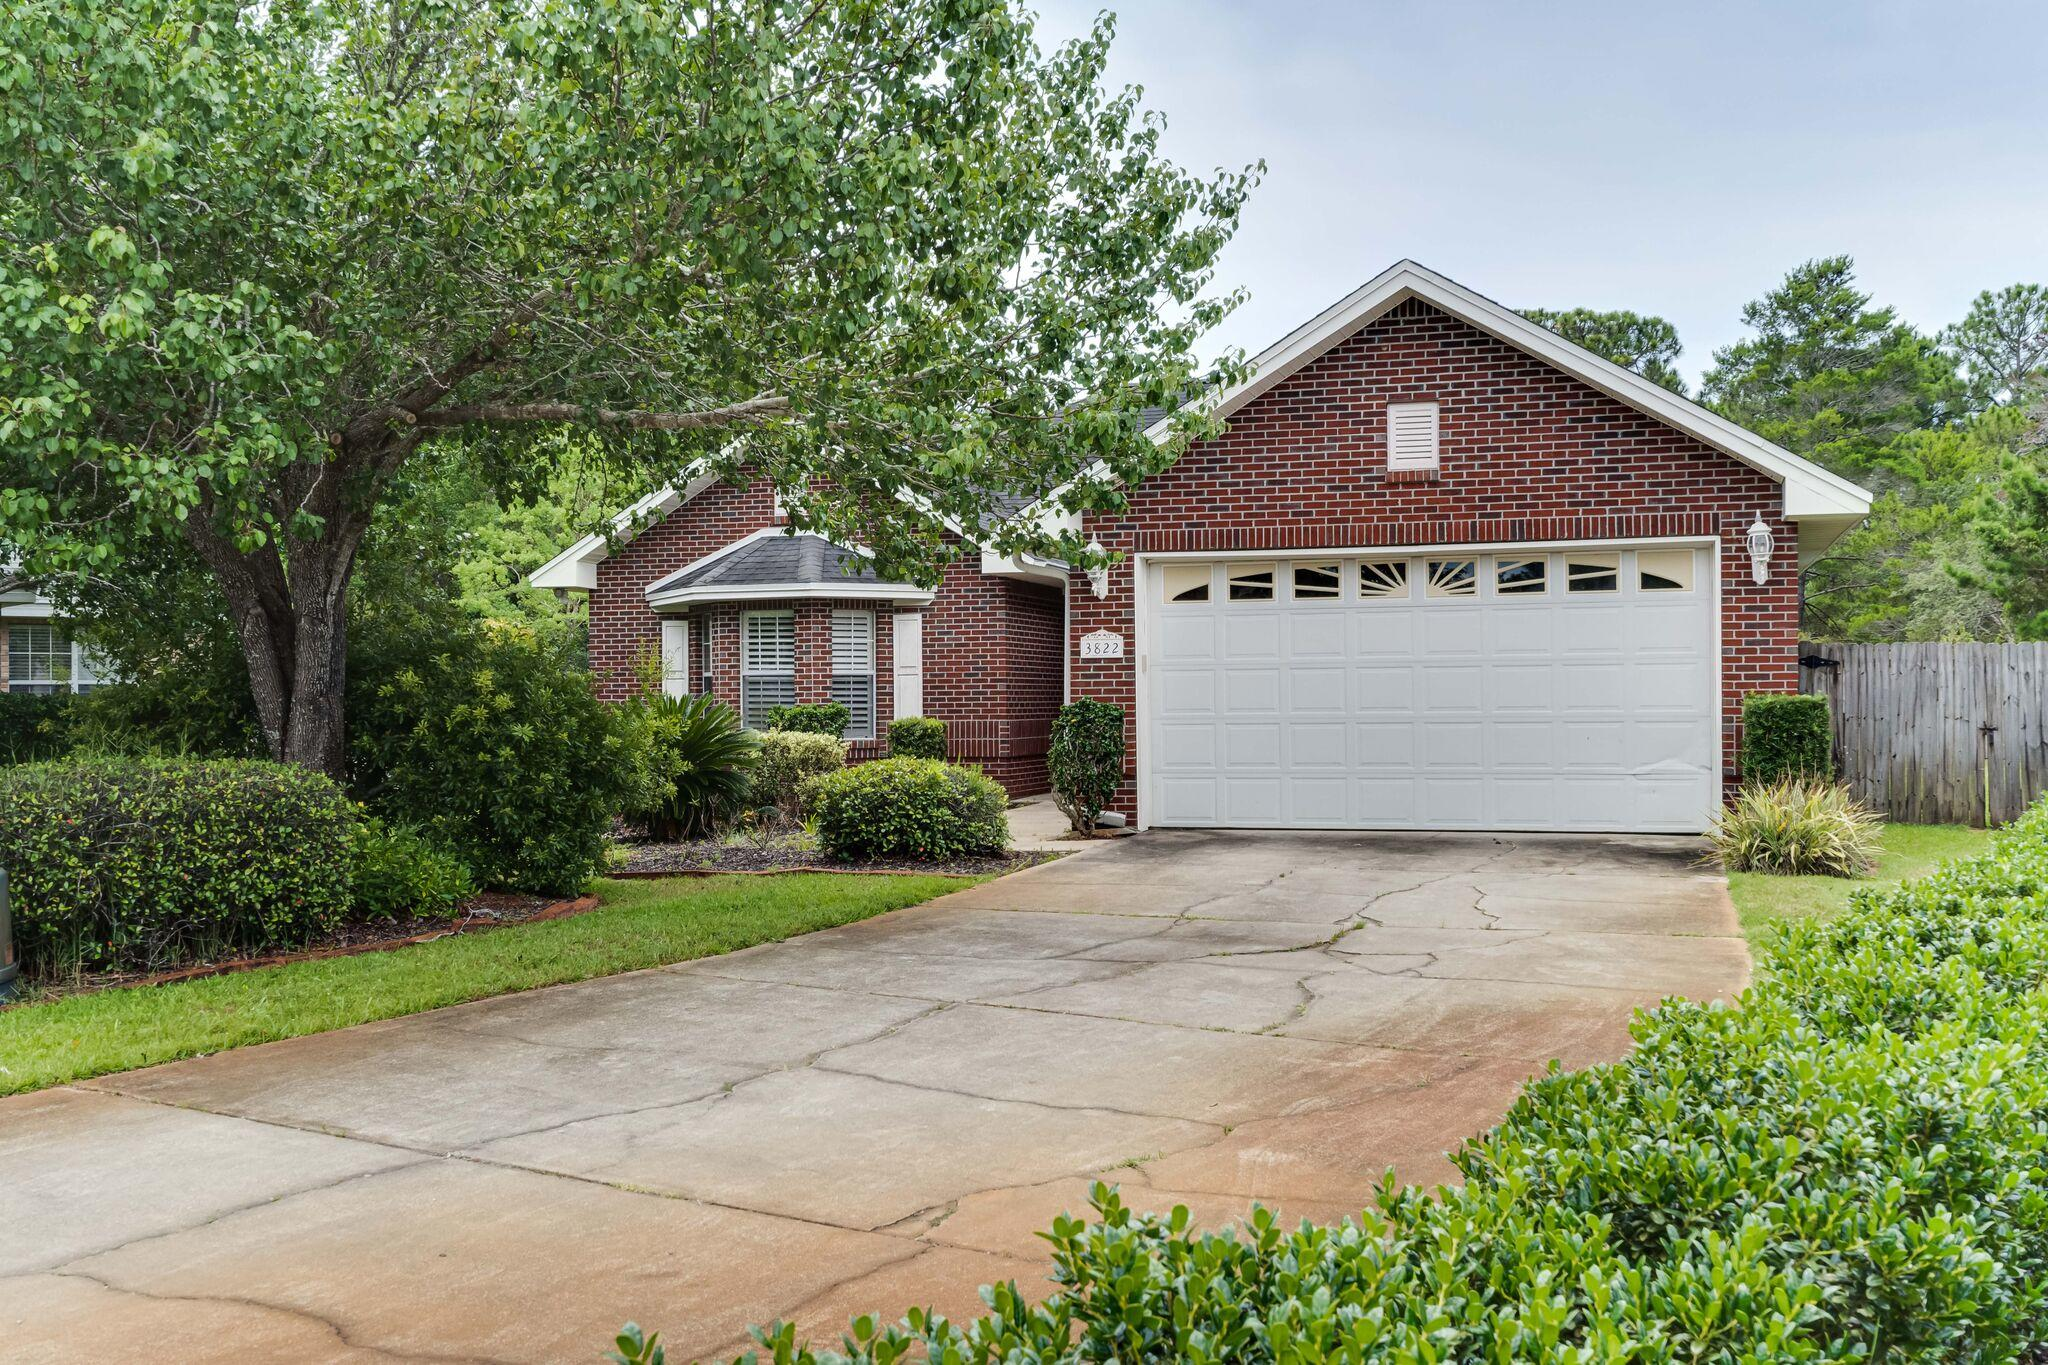 Executive Home in the heart of Destin! This home boasts a NEW custom kitchen complete with custom ca